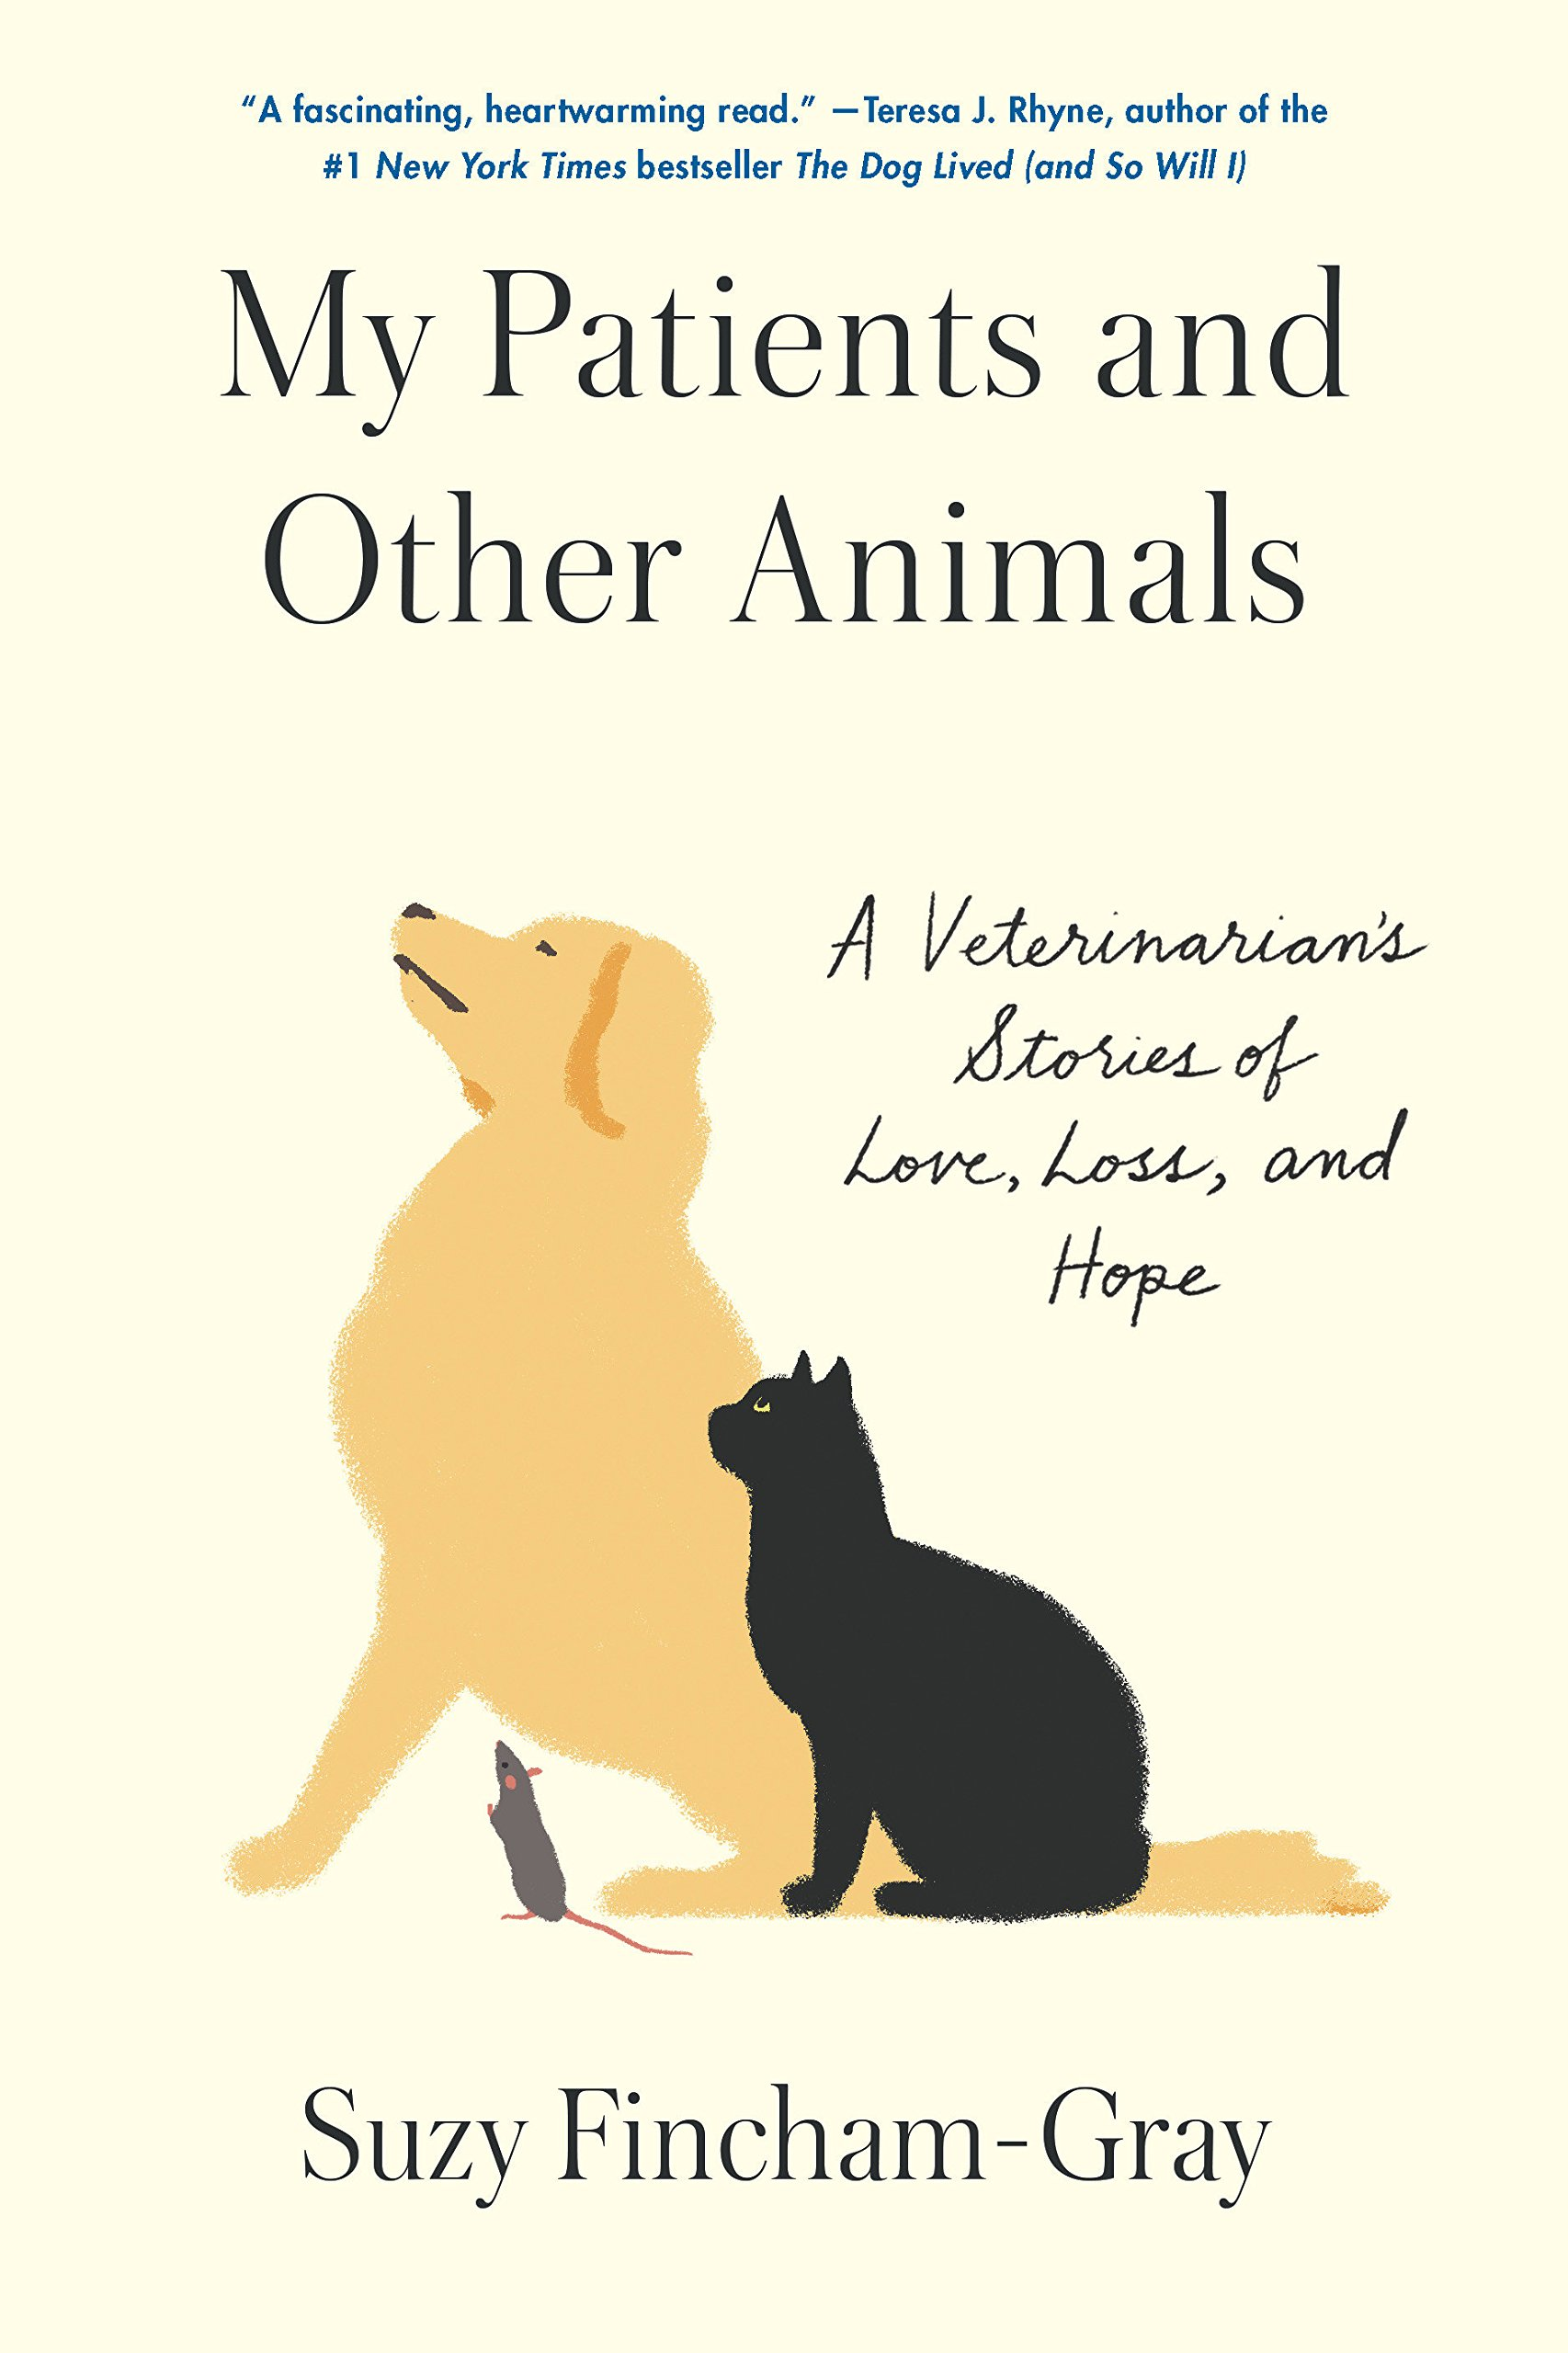 My Patients And Other Animals A Veterinarians Stories Of Love Loss Hope Suzy Fincham Gray 9780812998184 Amazon Books